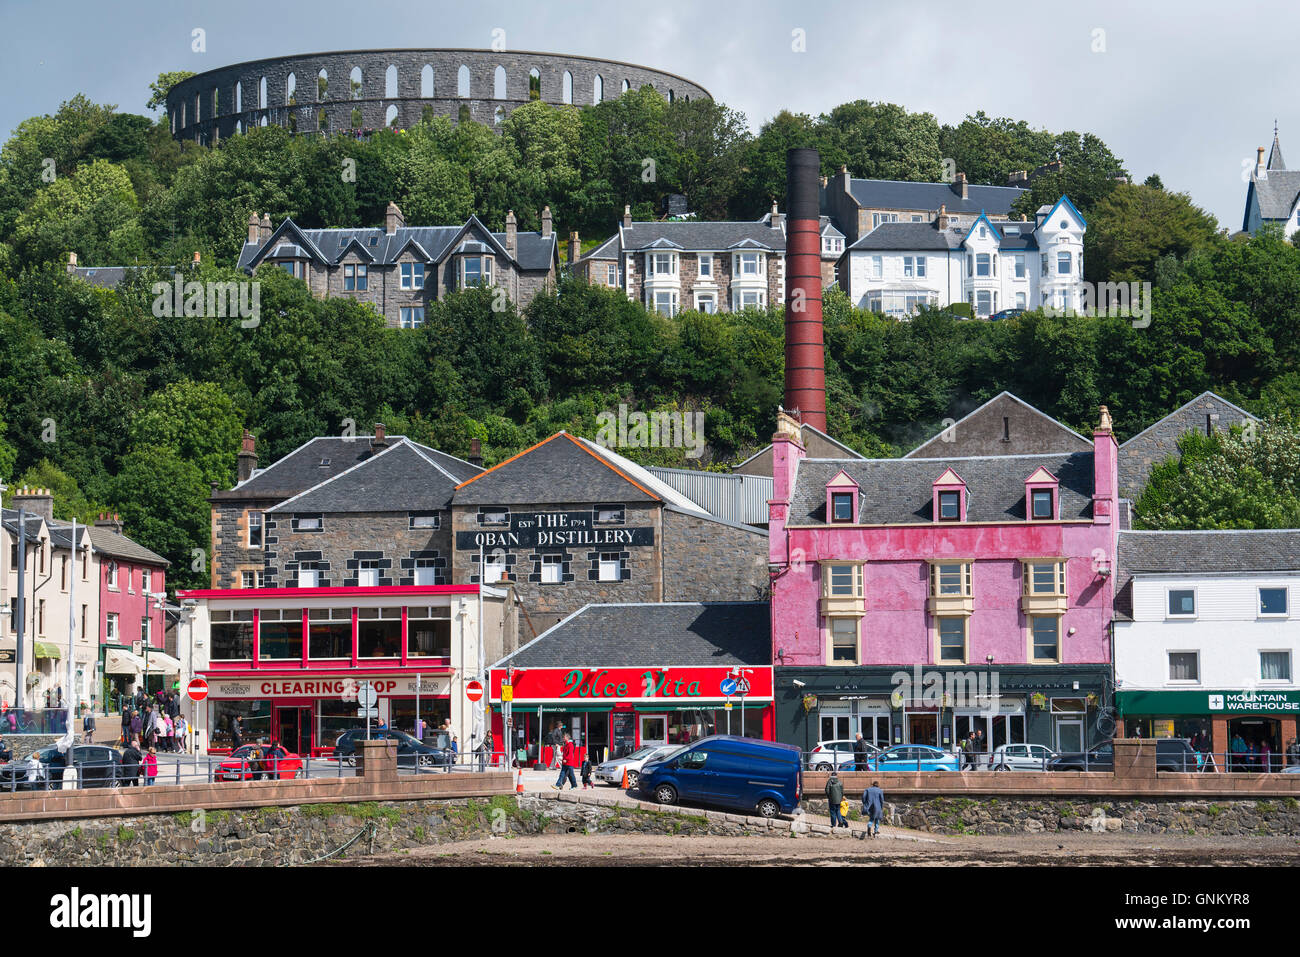 View of buildings in central Oban, Argyll and Bute, Scotland, United Kingdom - Stock Image